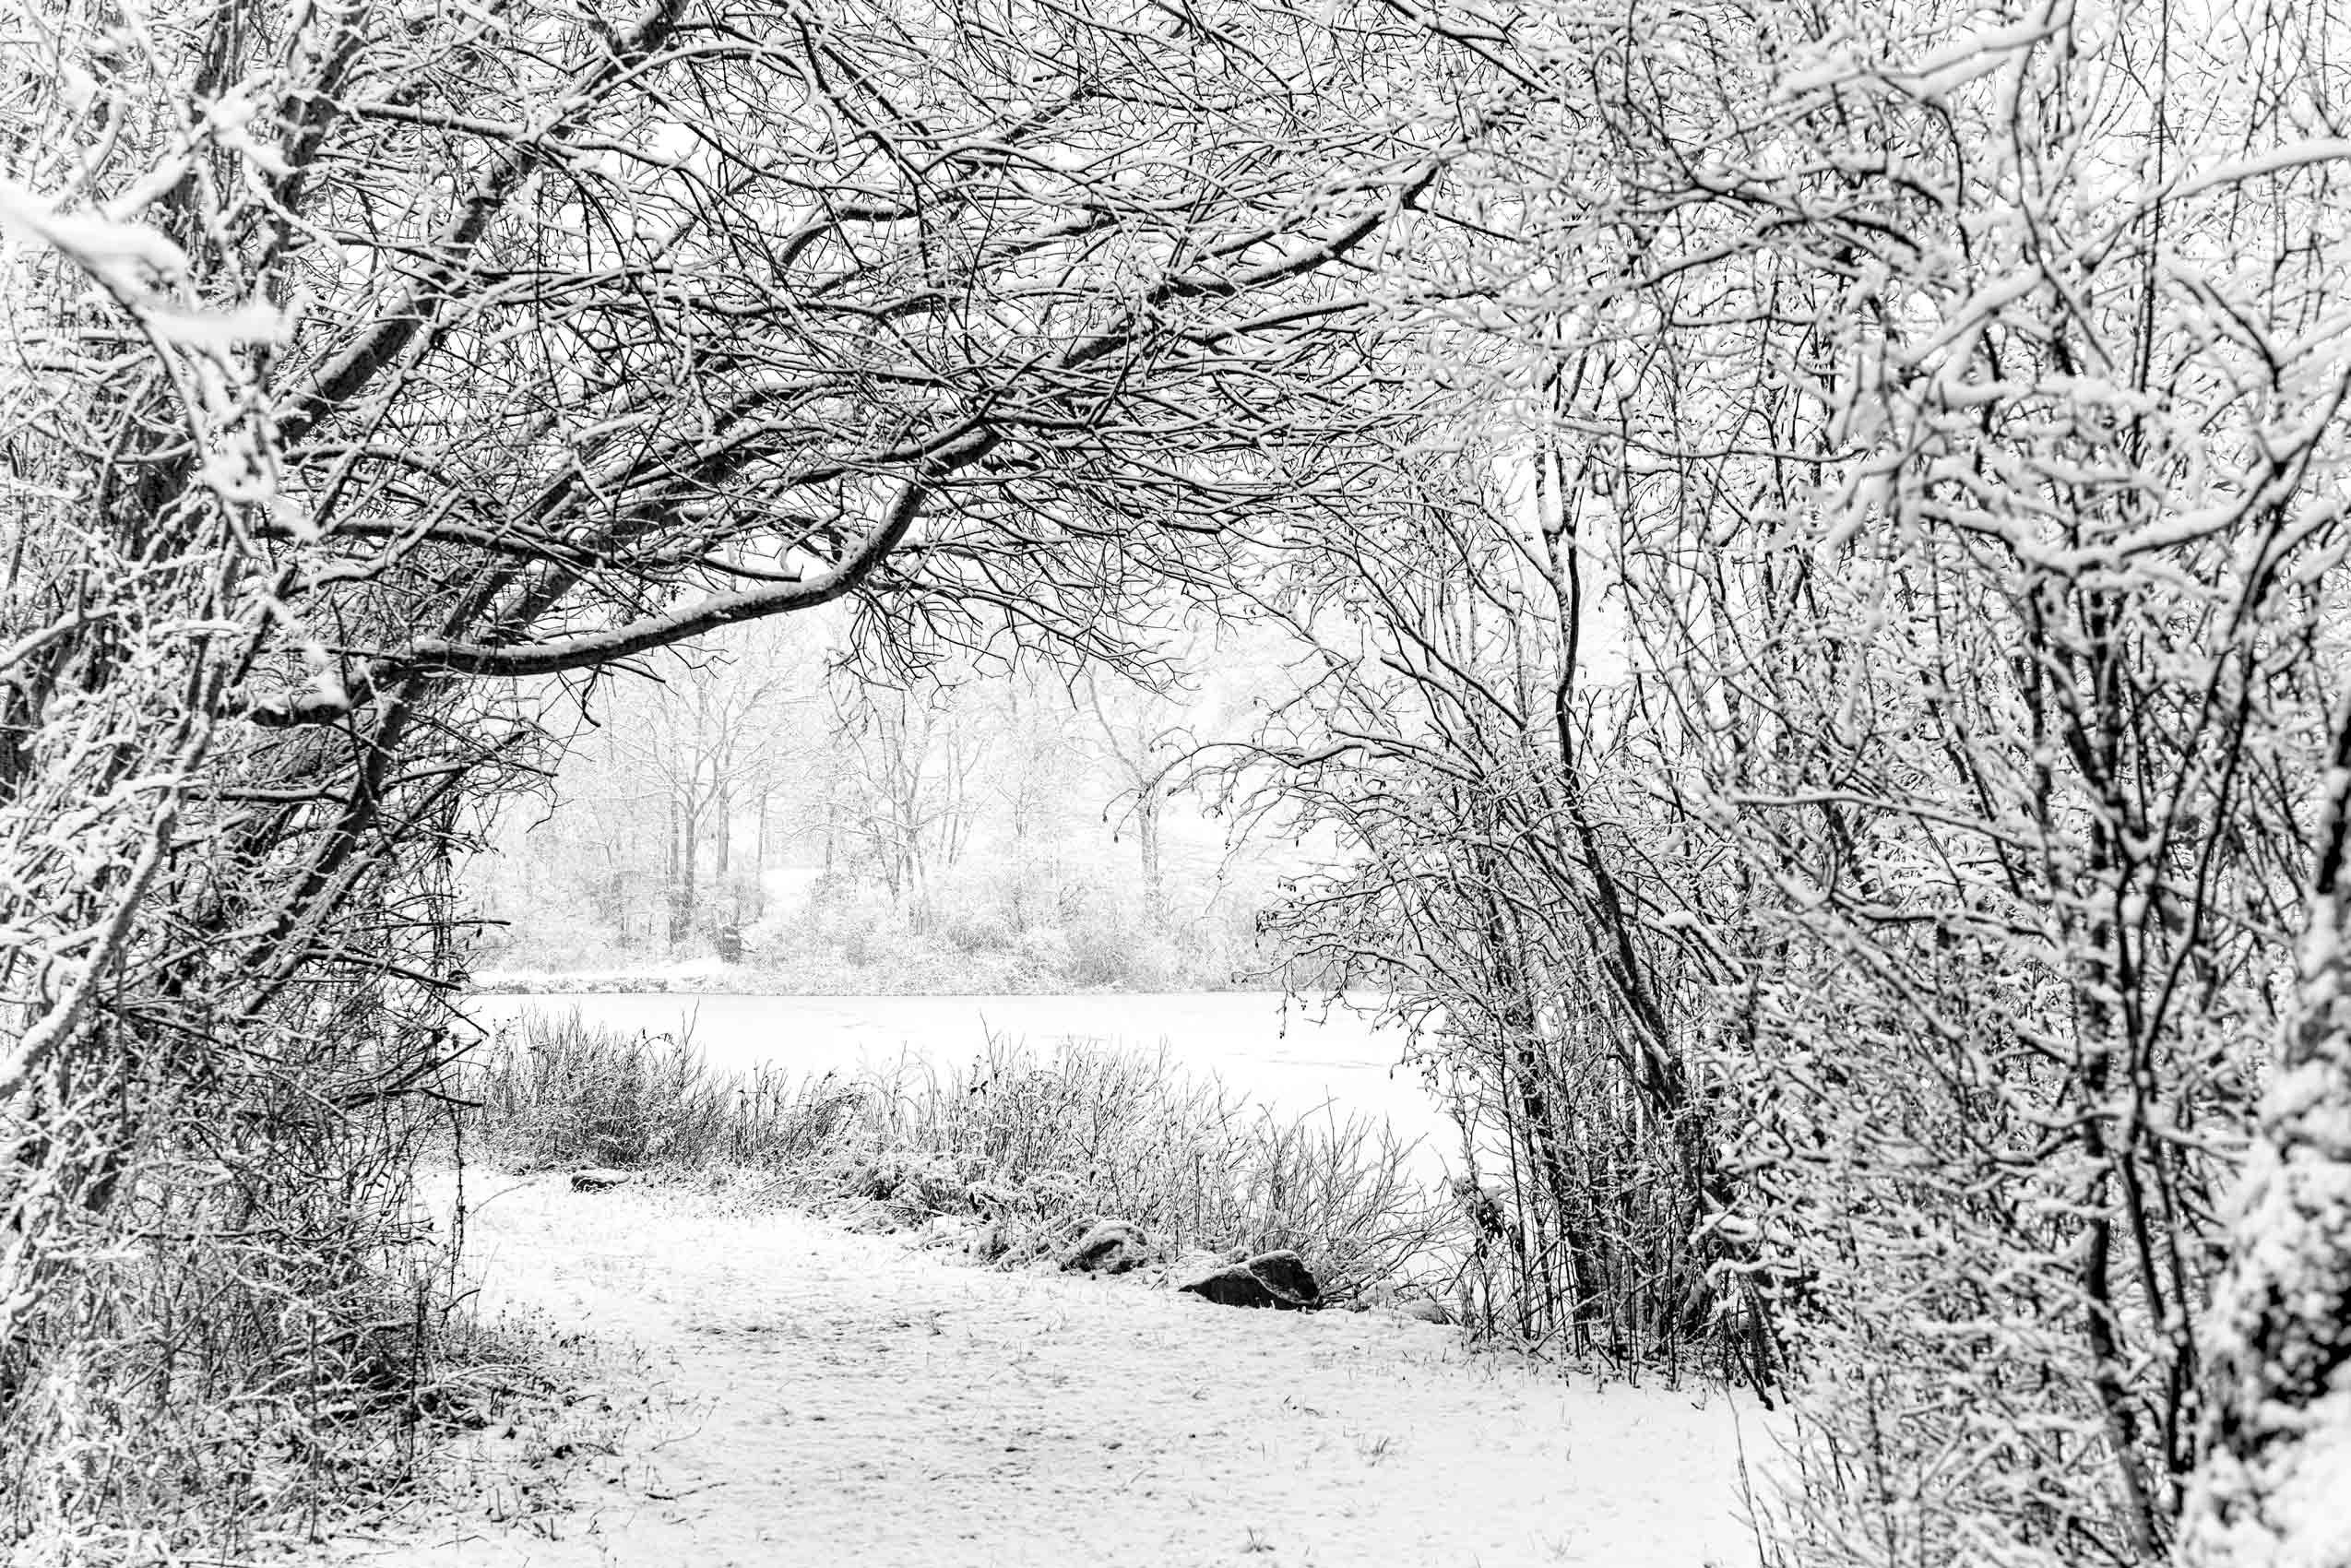 A Mind Of Winter, Priester's Pond, 2021